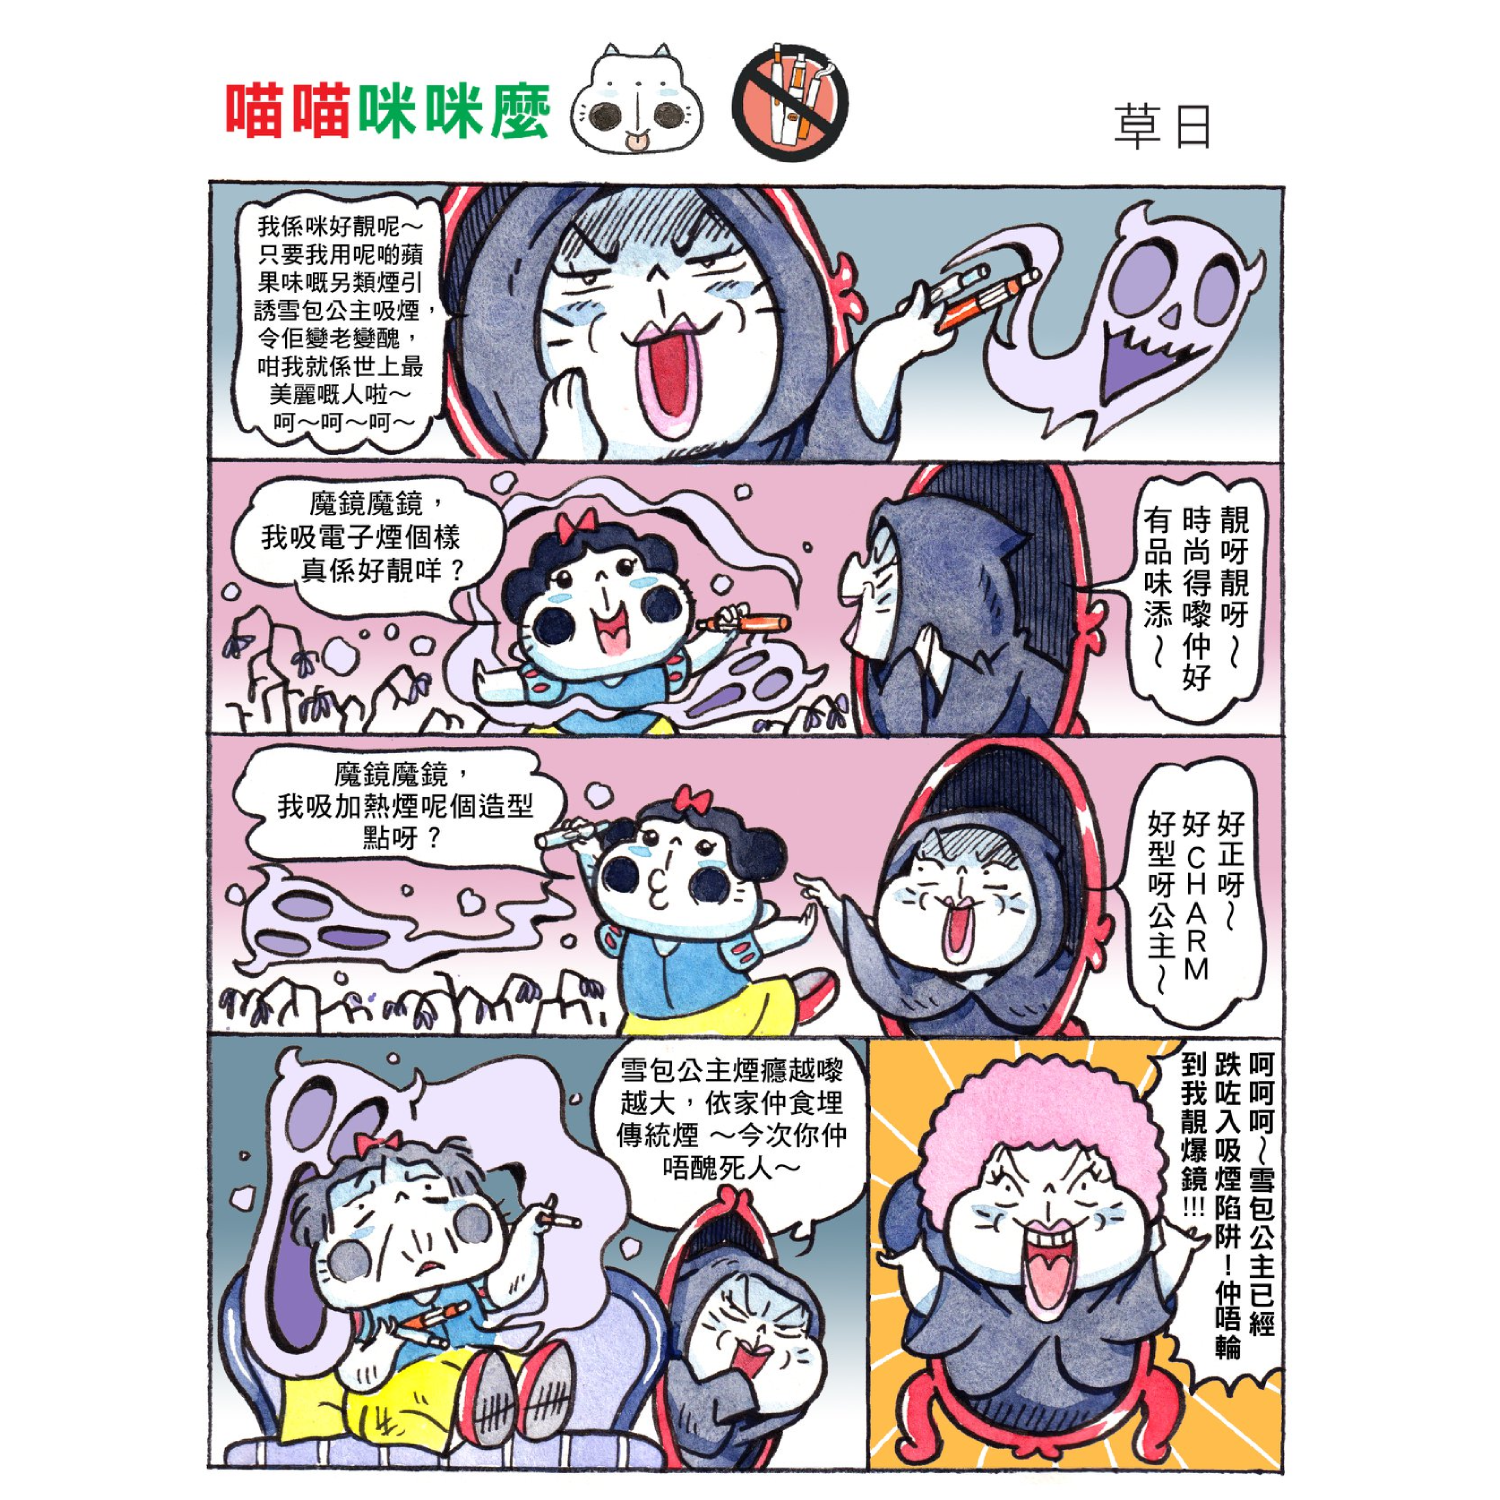 Chao Yat Comics tells you how to retain health and beauty